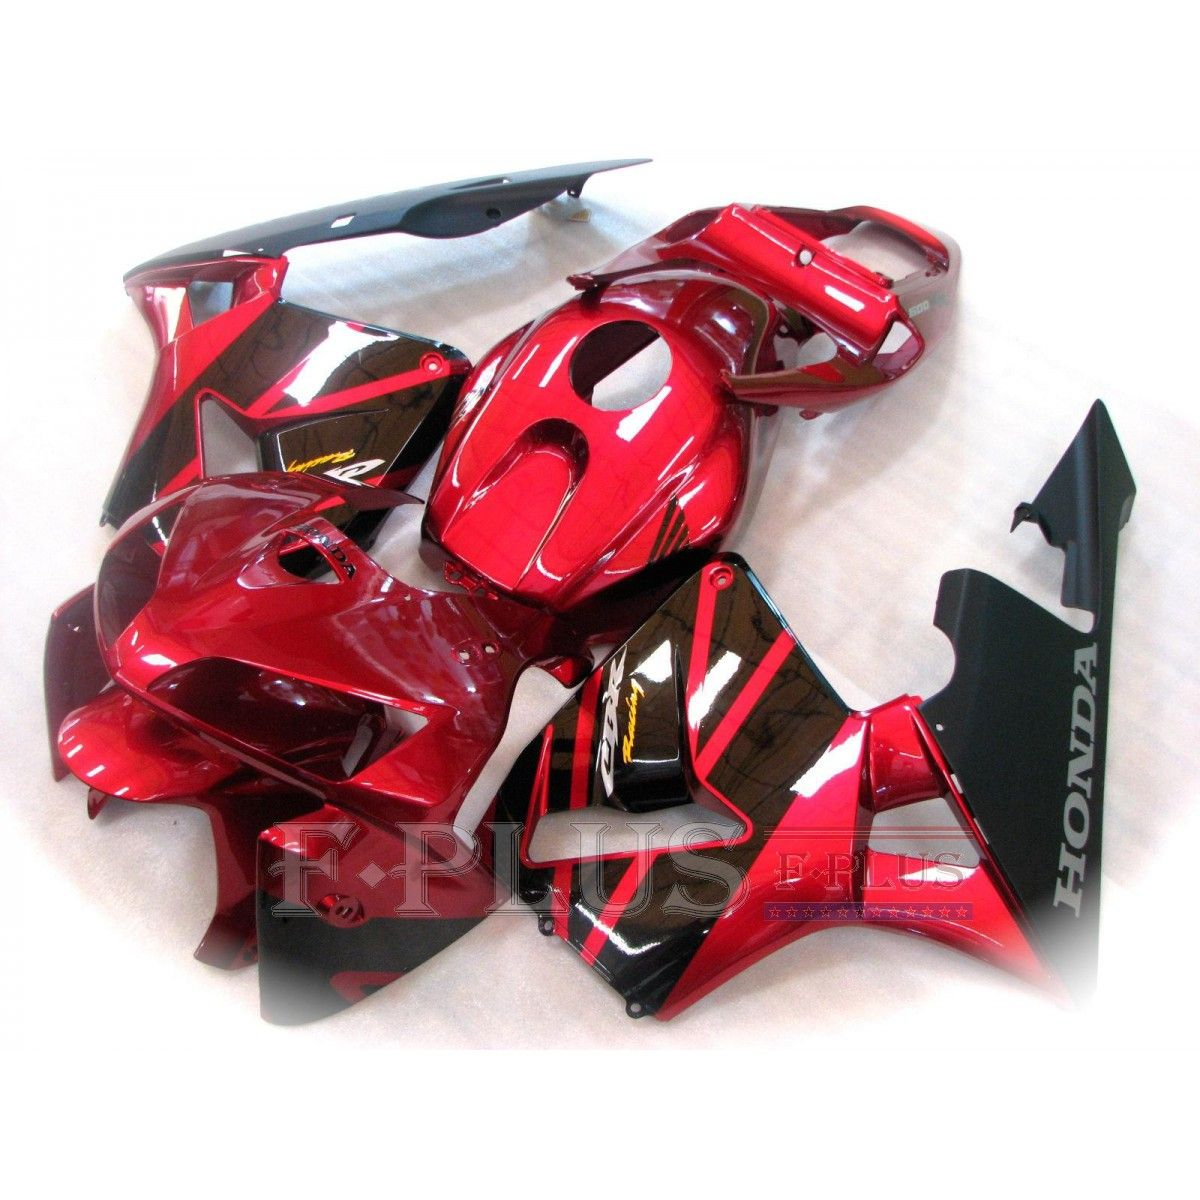 Aftermarket Fairings For Honda Cbr600rr 05 06 Red And Black Abs Kits